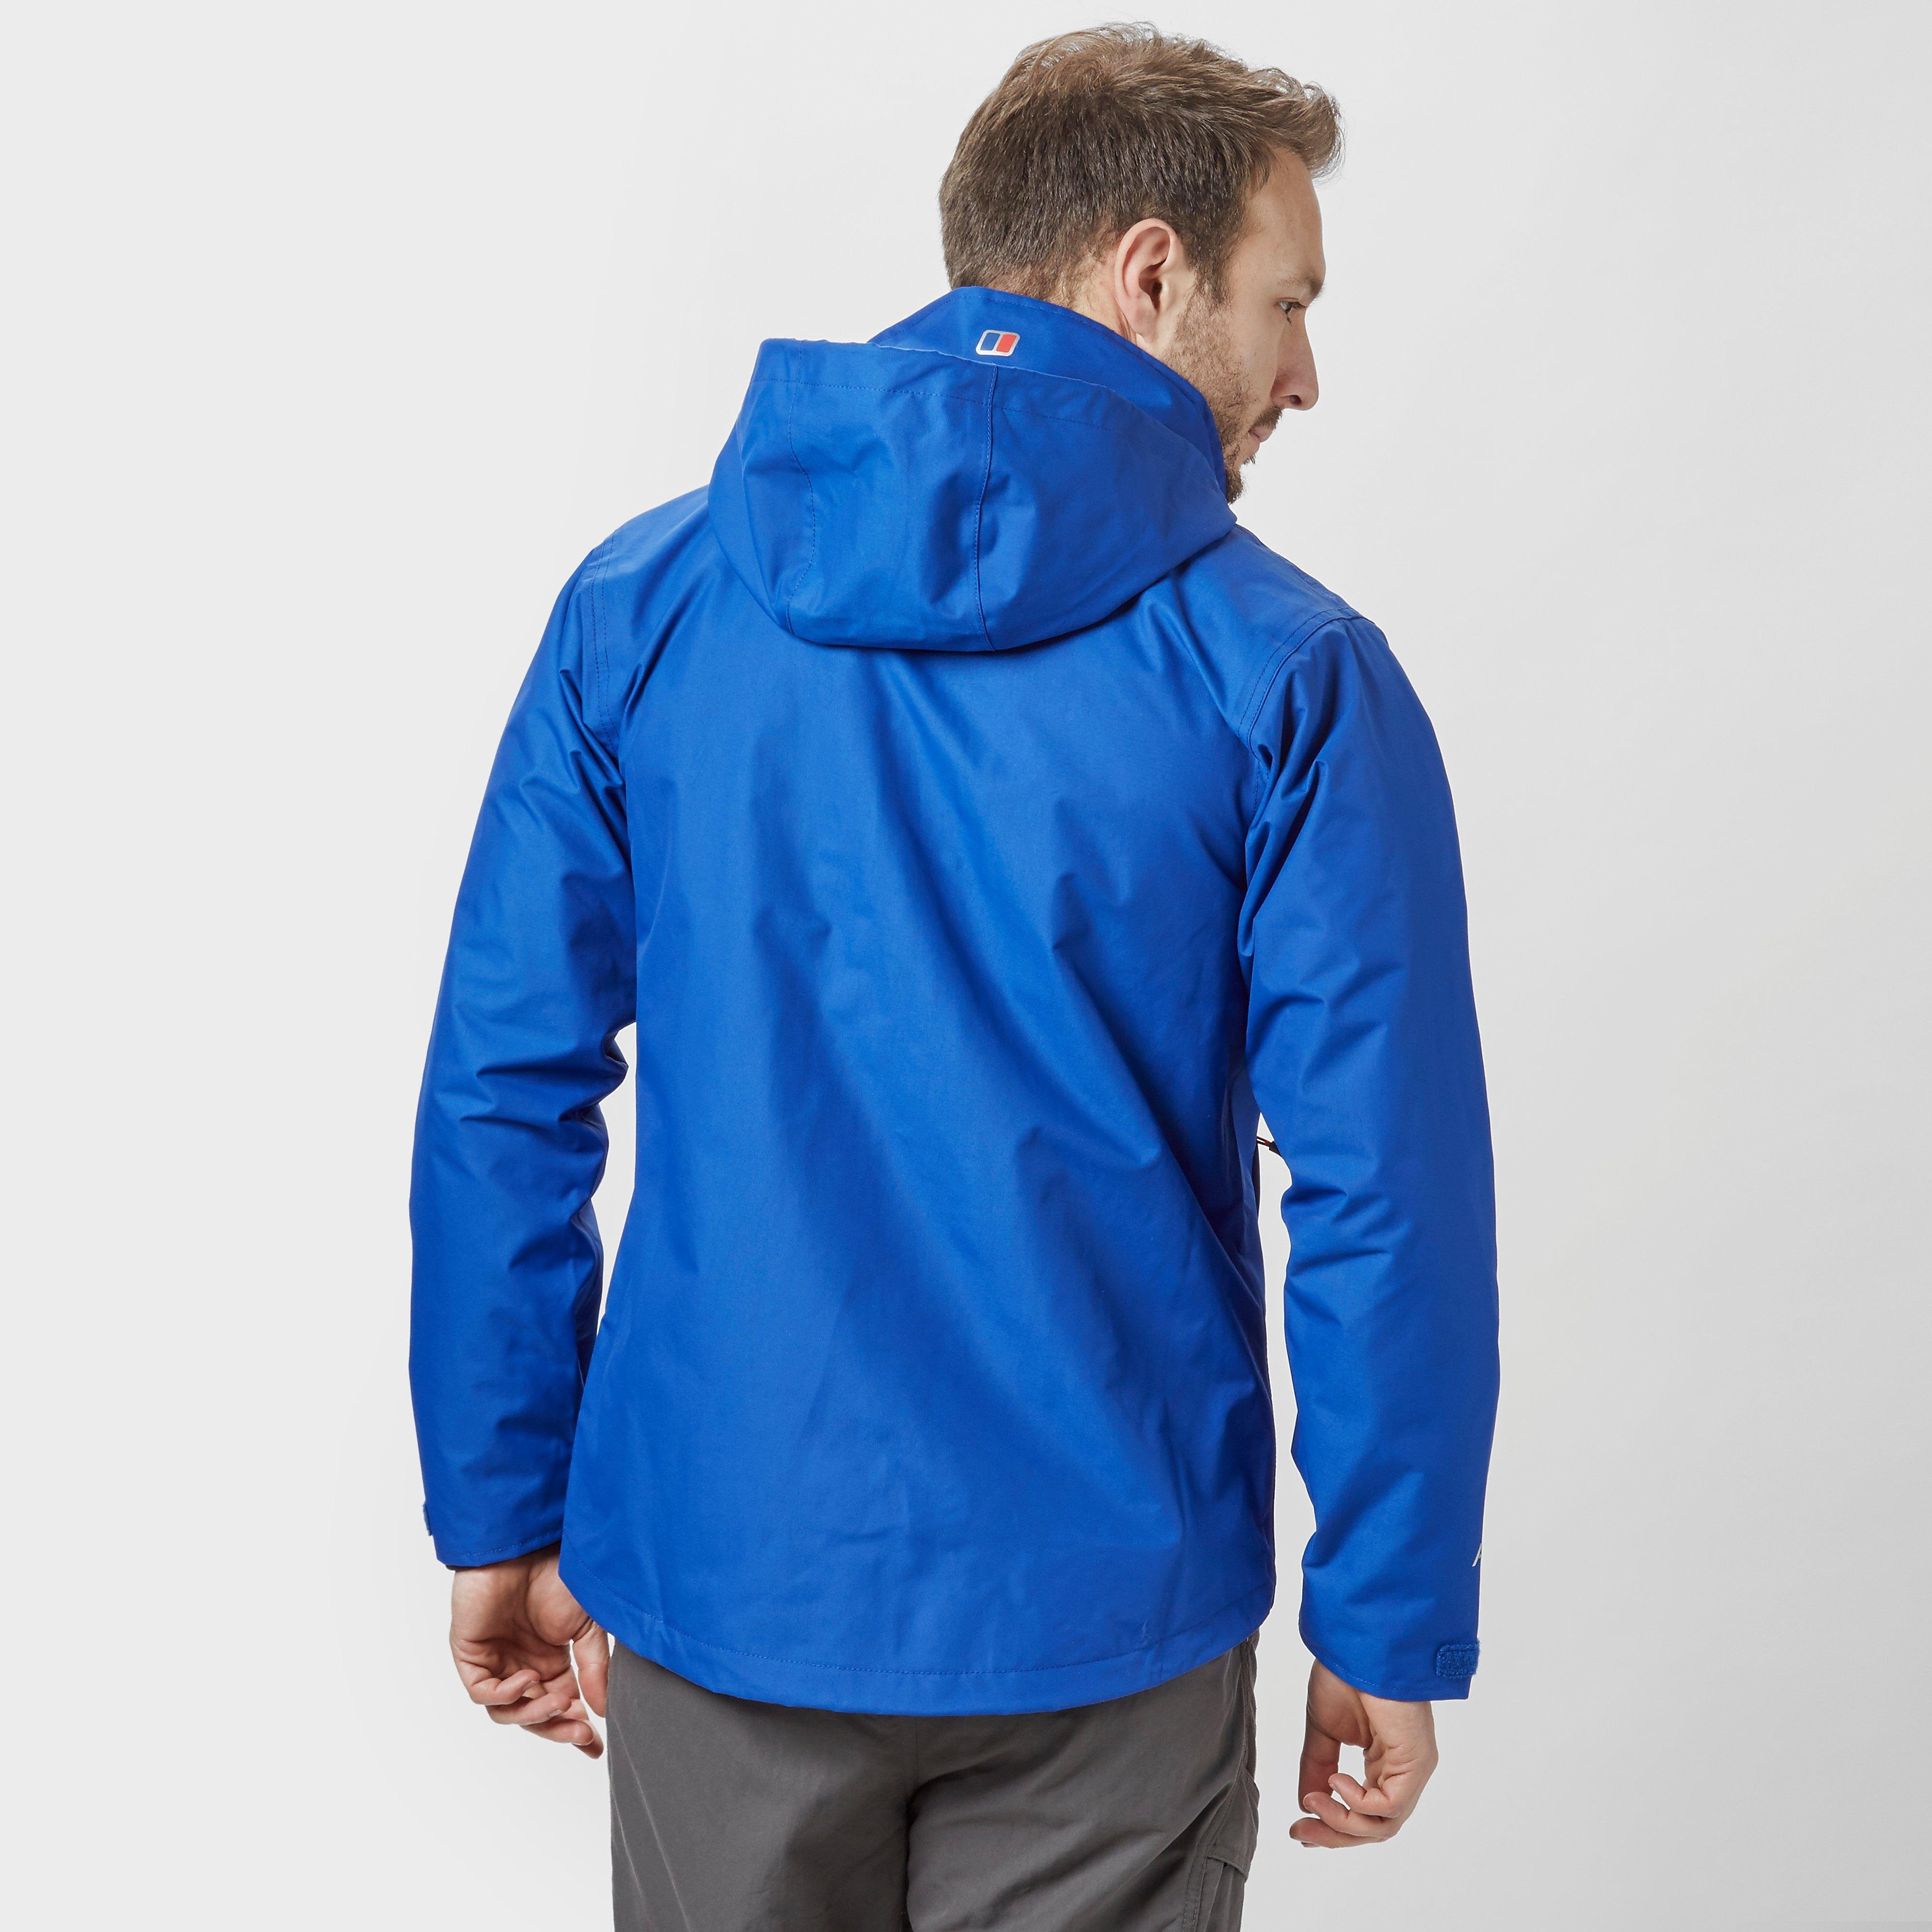 Berghaus RG Delta Waterproof Men's Jacket